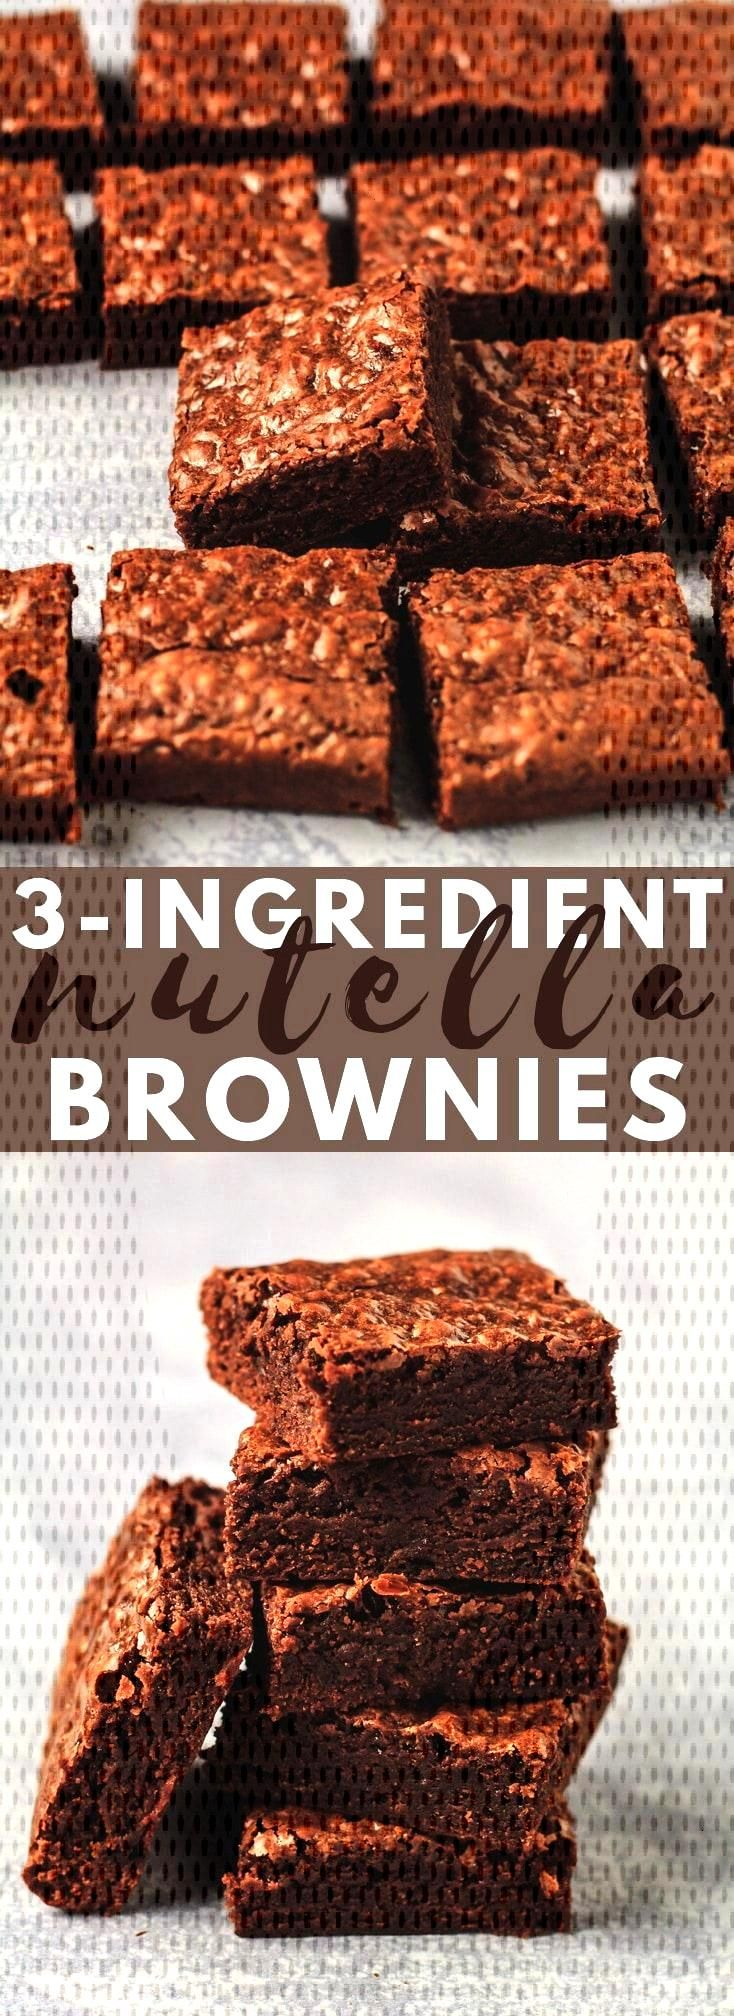 Easy 3 Ingredient Nutella Brownies - Deliciously thick and fudgy brownies that are LOADED with Nute